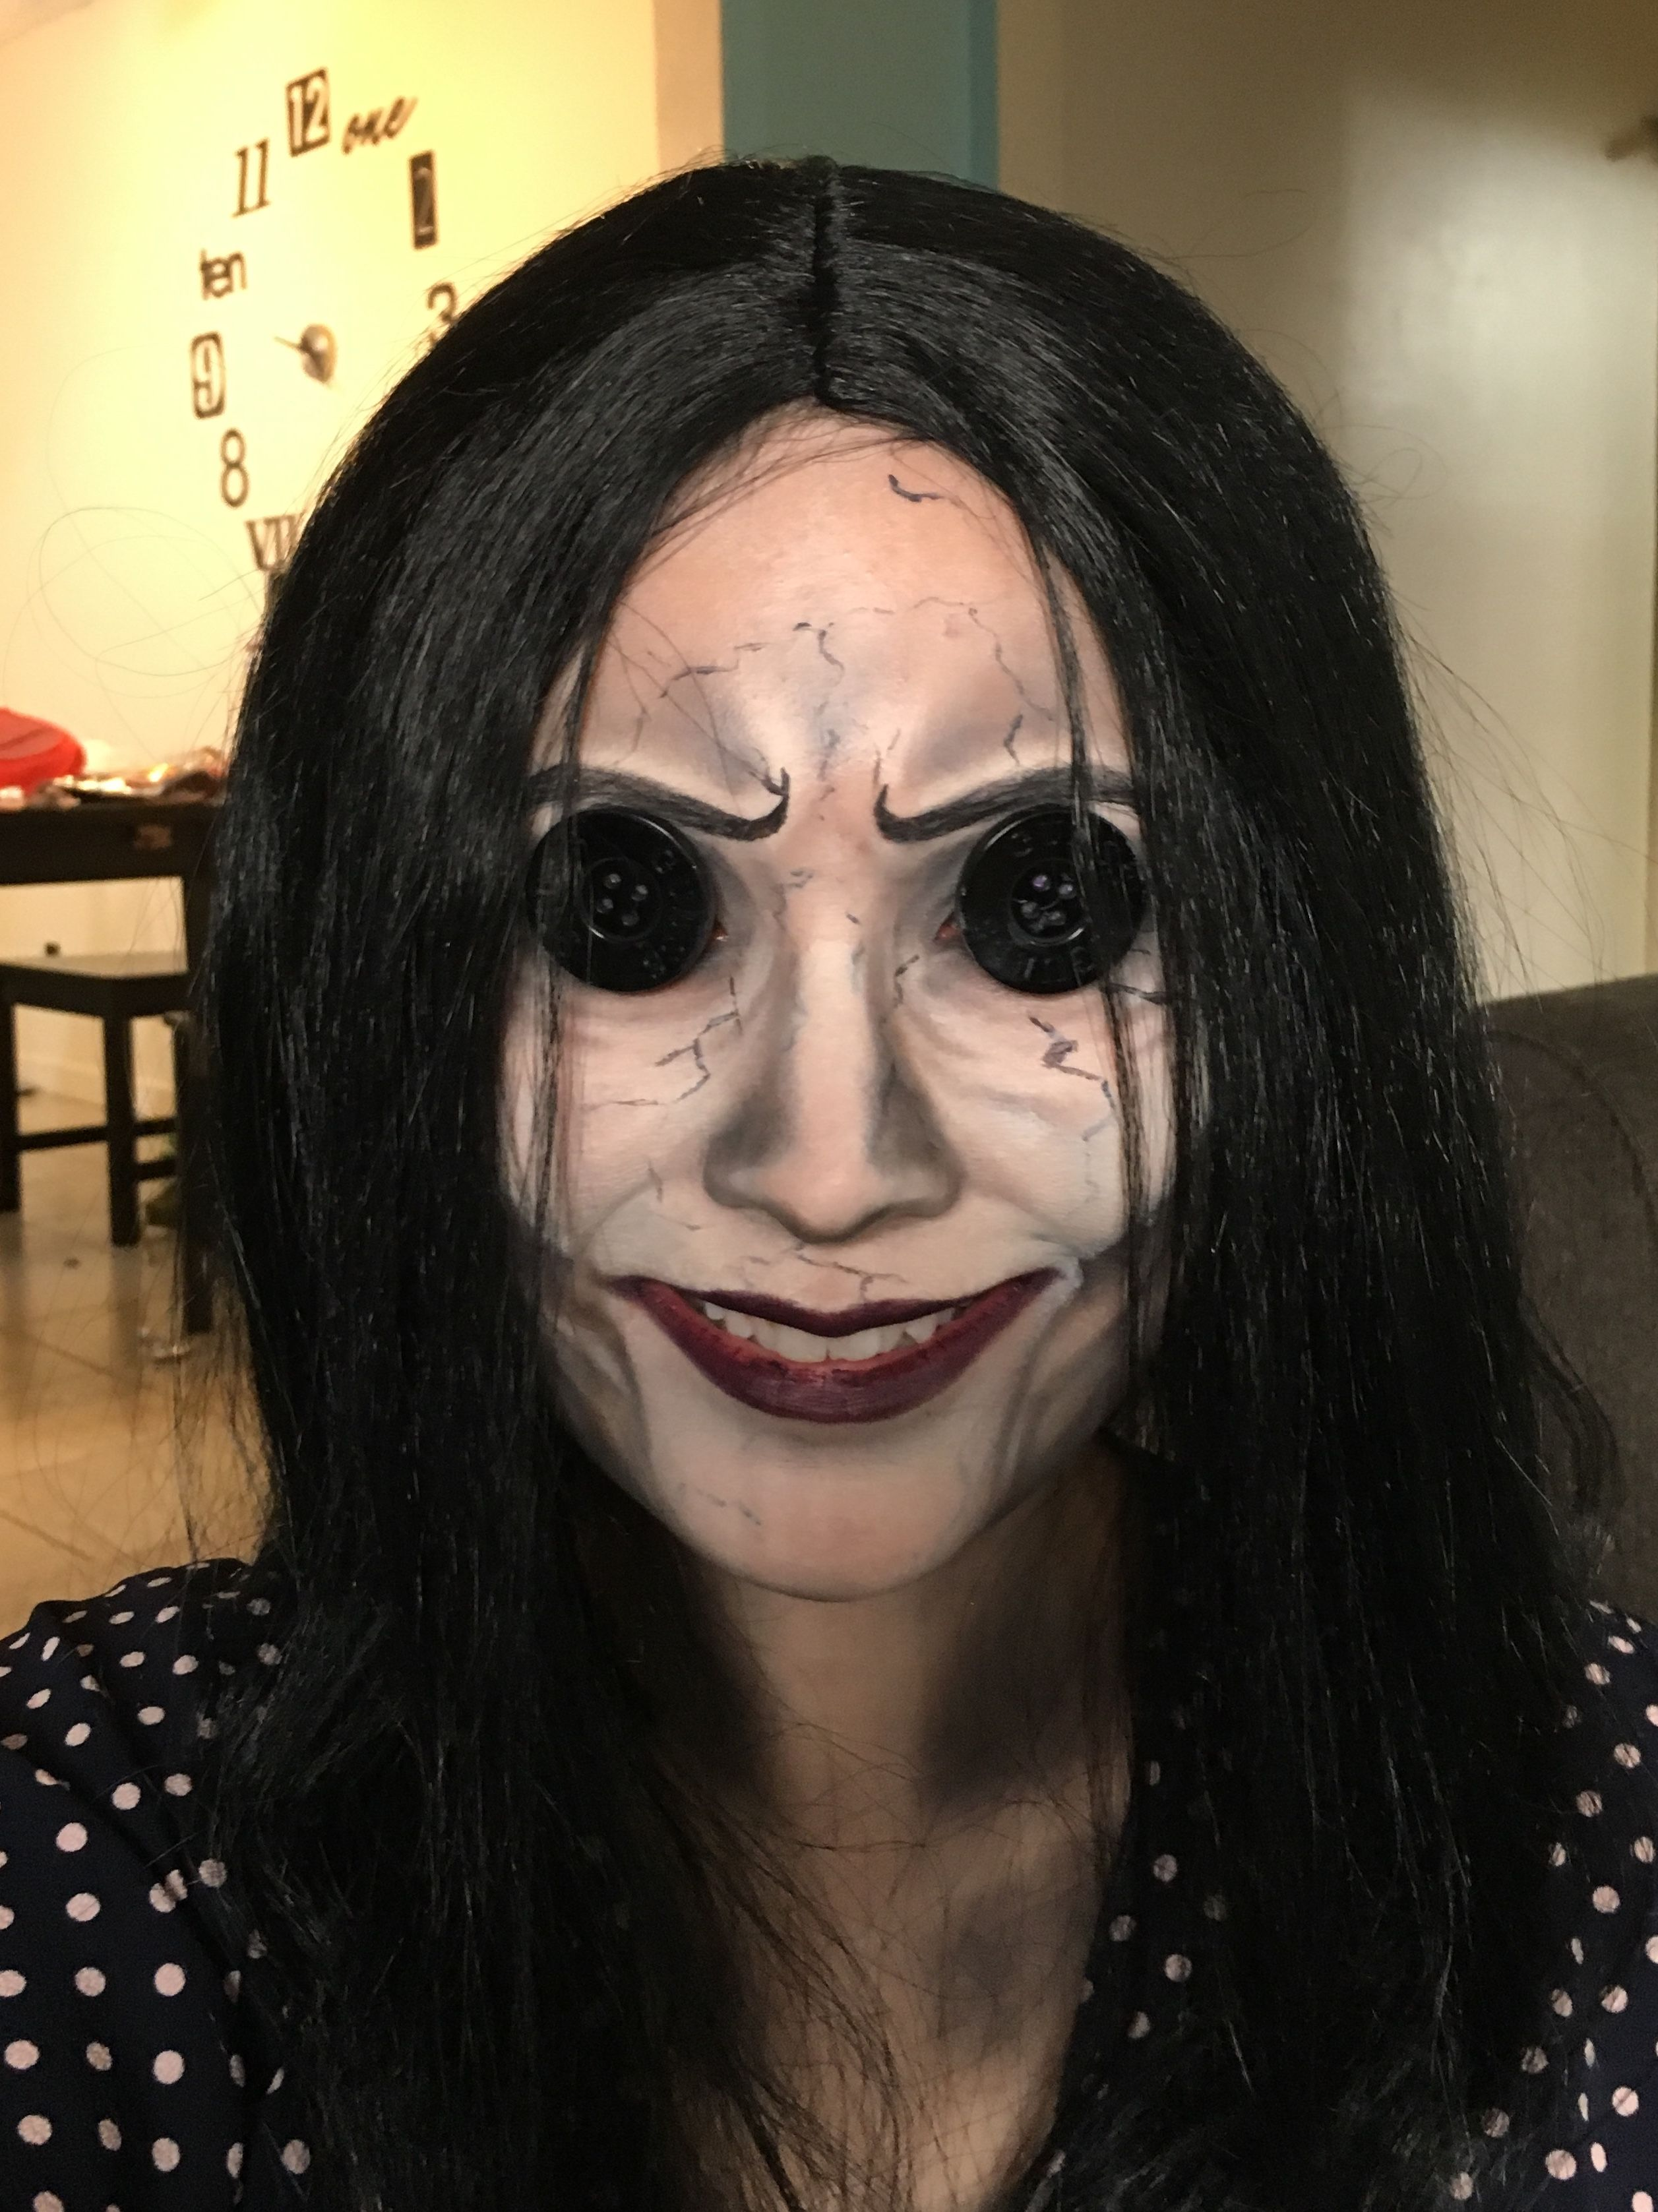 Other Mother Makeup By Kw3ra Creepy Halloween Spooky Scary Makeup Othermother Coraline Costume Mothers Makeup Makeup Spooky Costumes